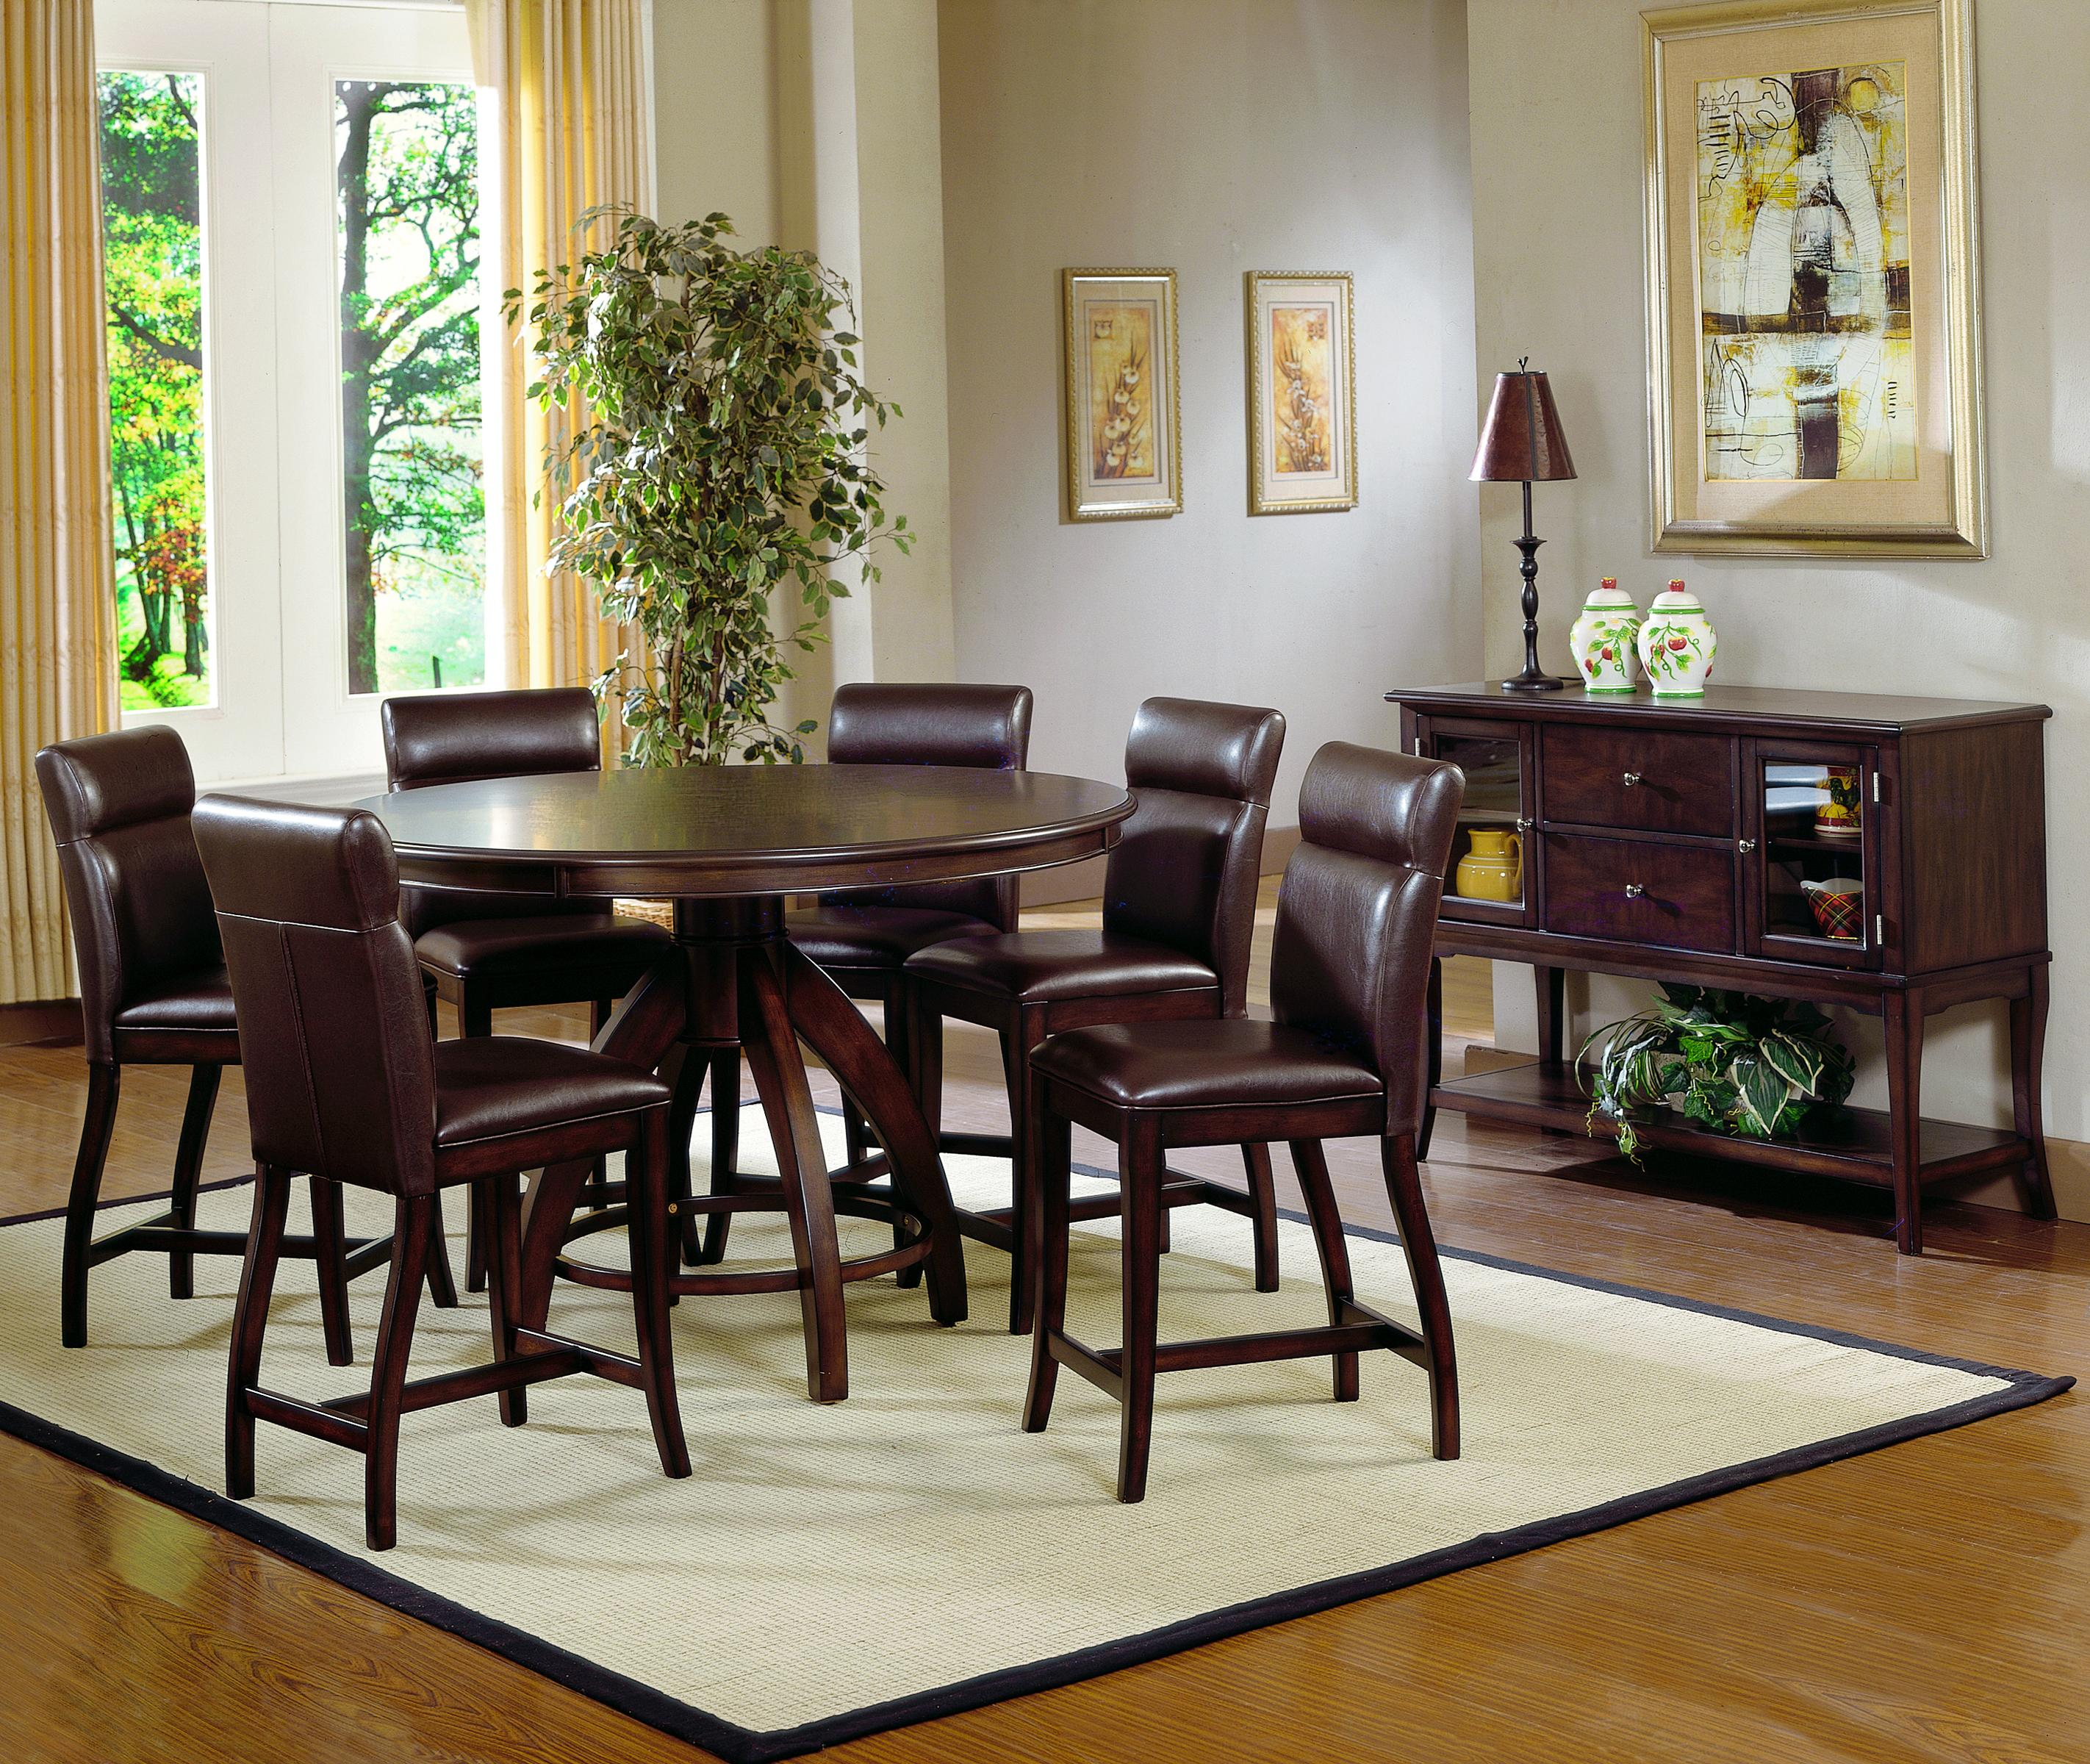 Hillsdale Nottingham Timeless Counter Height Dining Table  : products2Fhillsdale2Fcolor2Fnottingham2040774077dtbg b5 from www.johnnyjanosik.com size 2844 x 2400 jpeg 1096kB